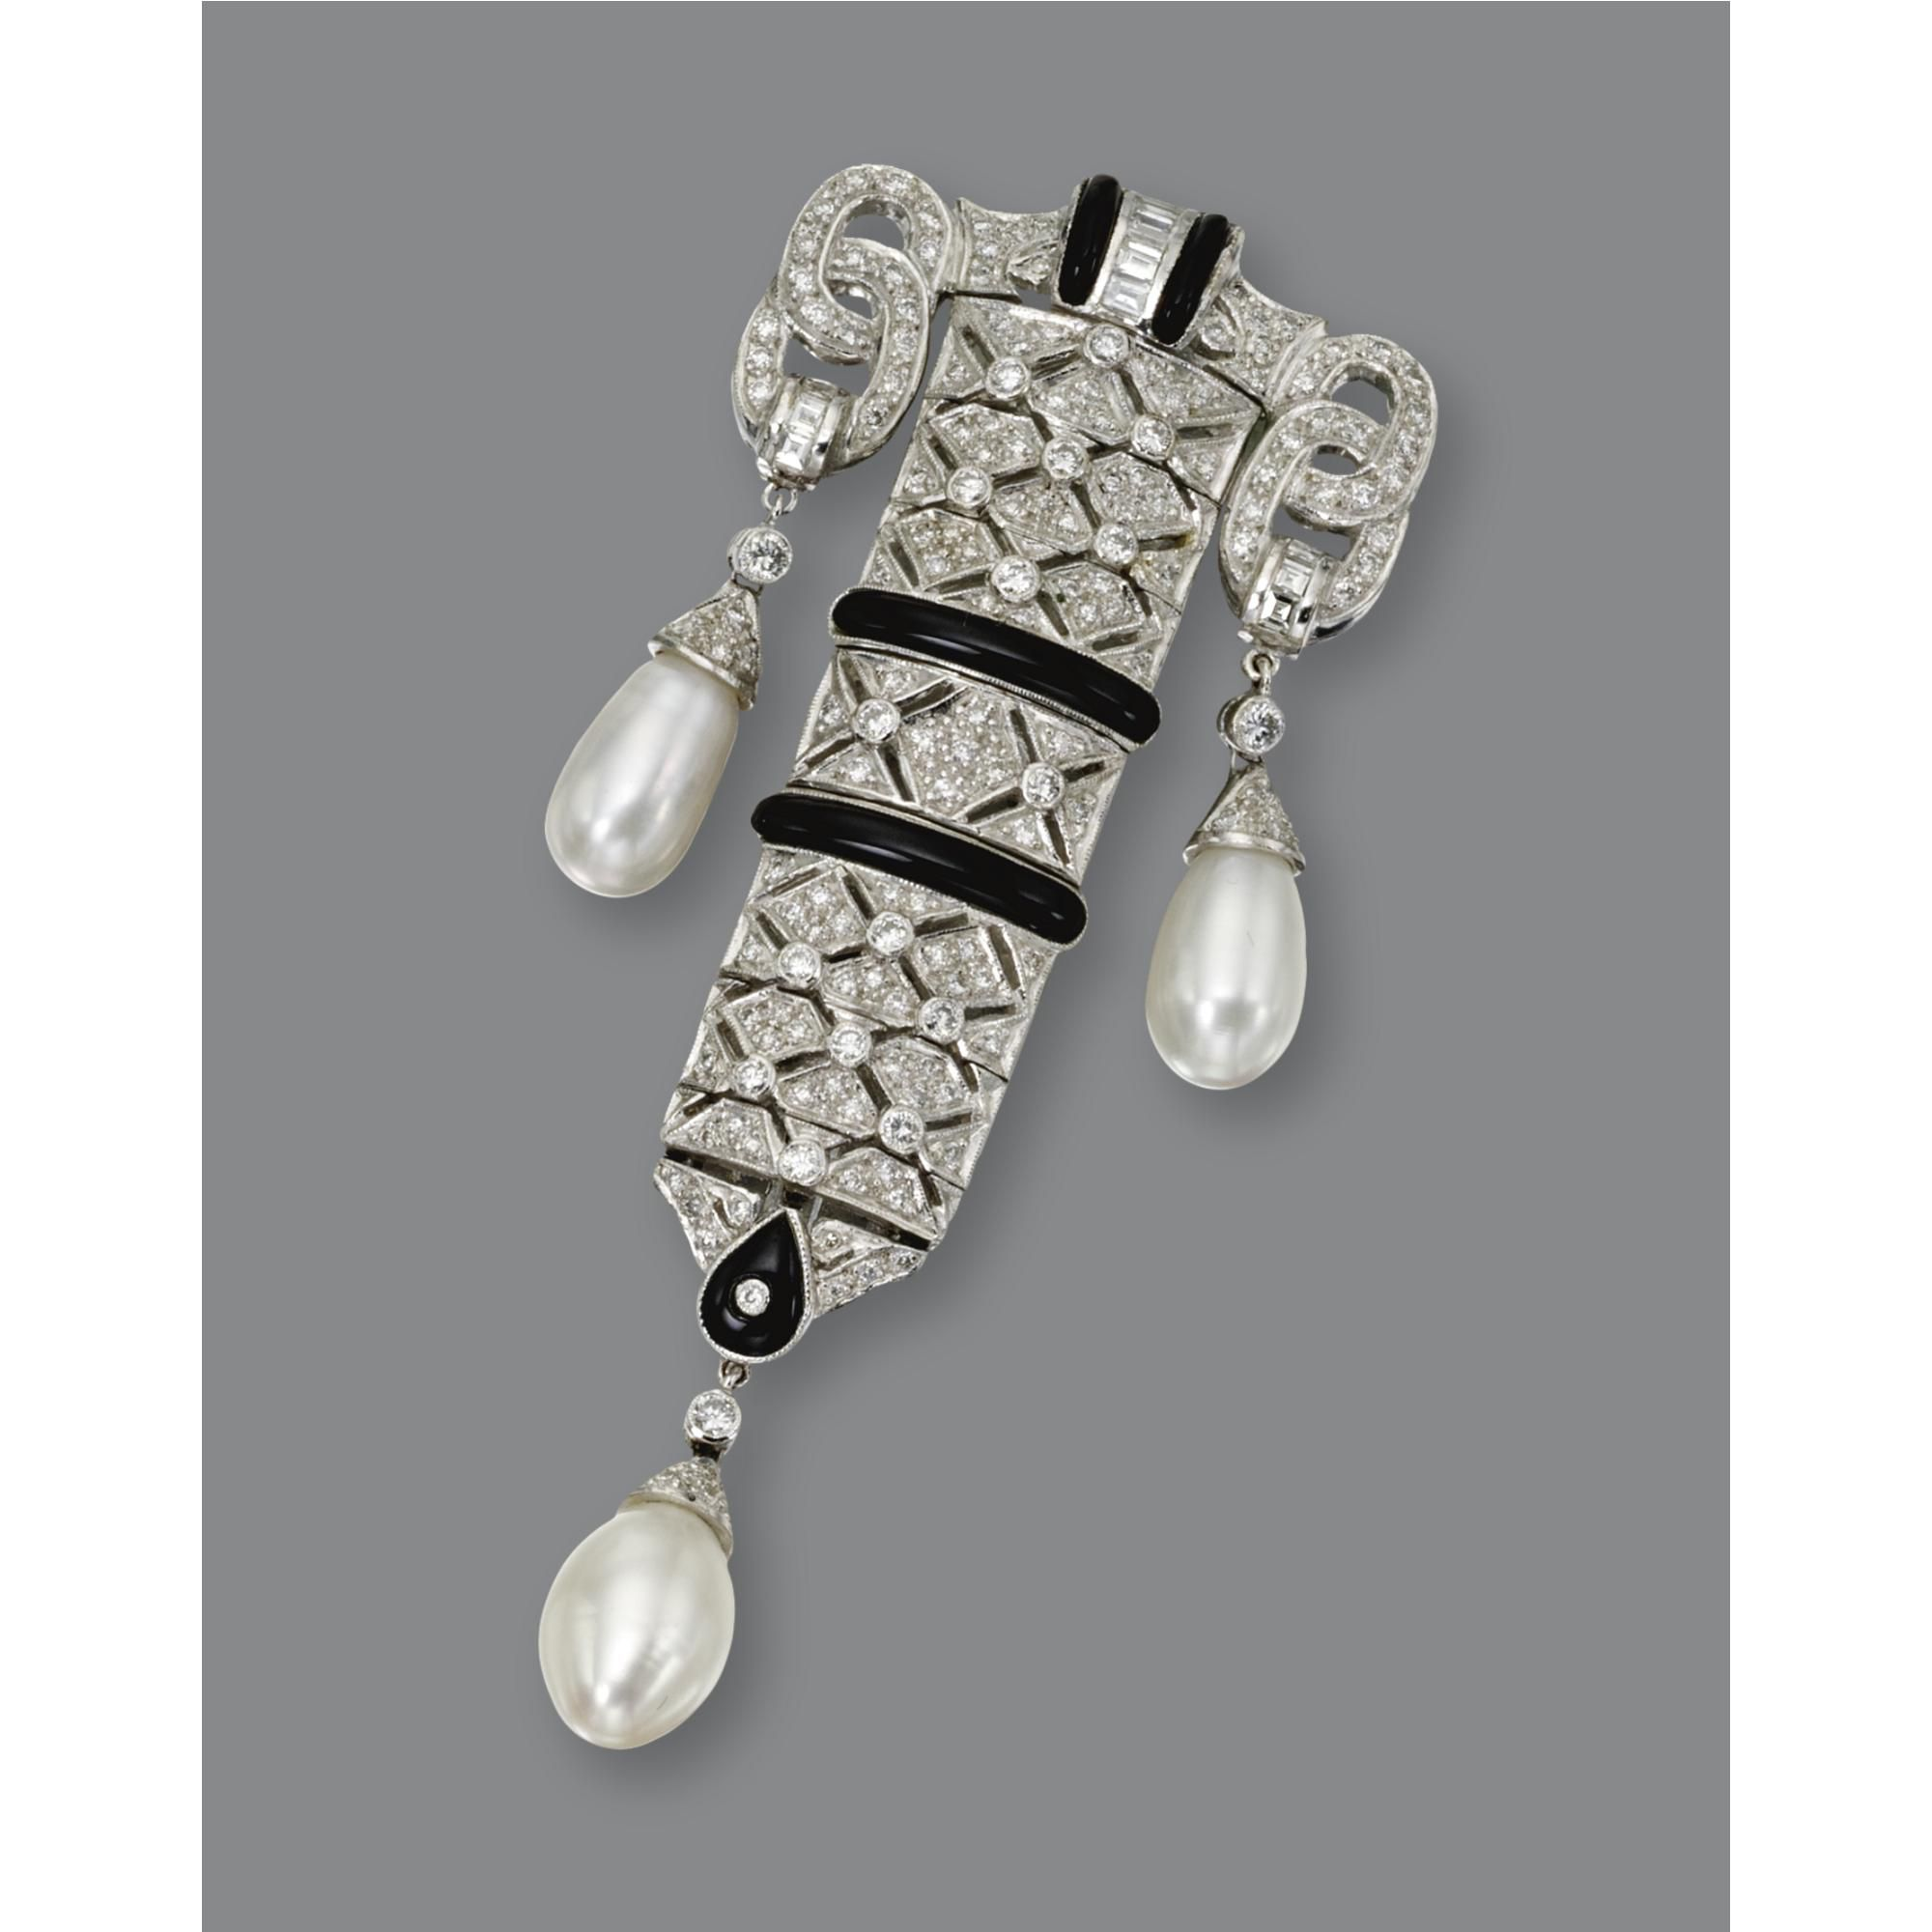 ART DECO DIAMOND, ONYX & CULTURED PEARL PENDANT-BROOCH The articulated pendant of geometric design set with 185 small round & baguette diamonds weighing approx 1.45 cts, accented further with bands of black onyx & 3 cultured pearl drops, in 18kt white gold, supported on an 18kt white gold chain.